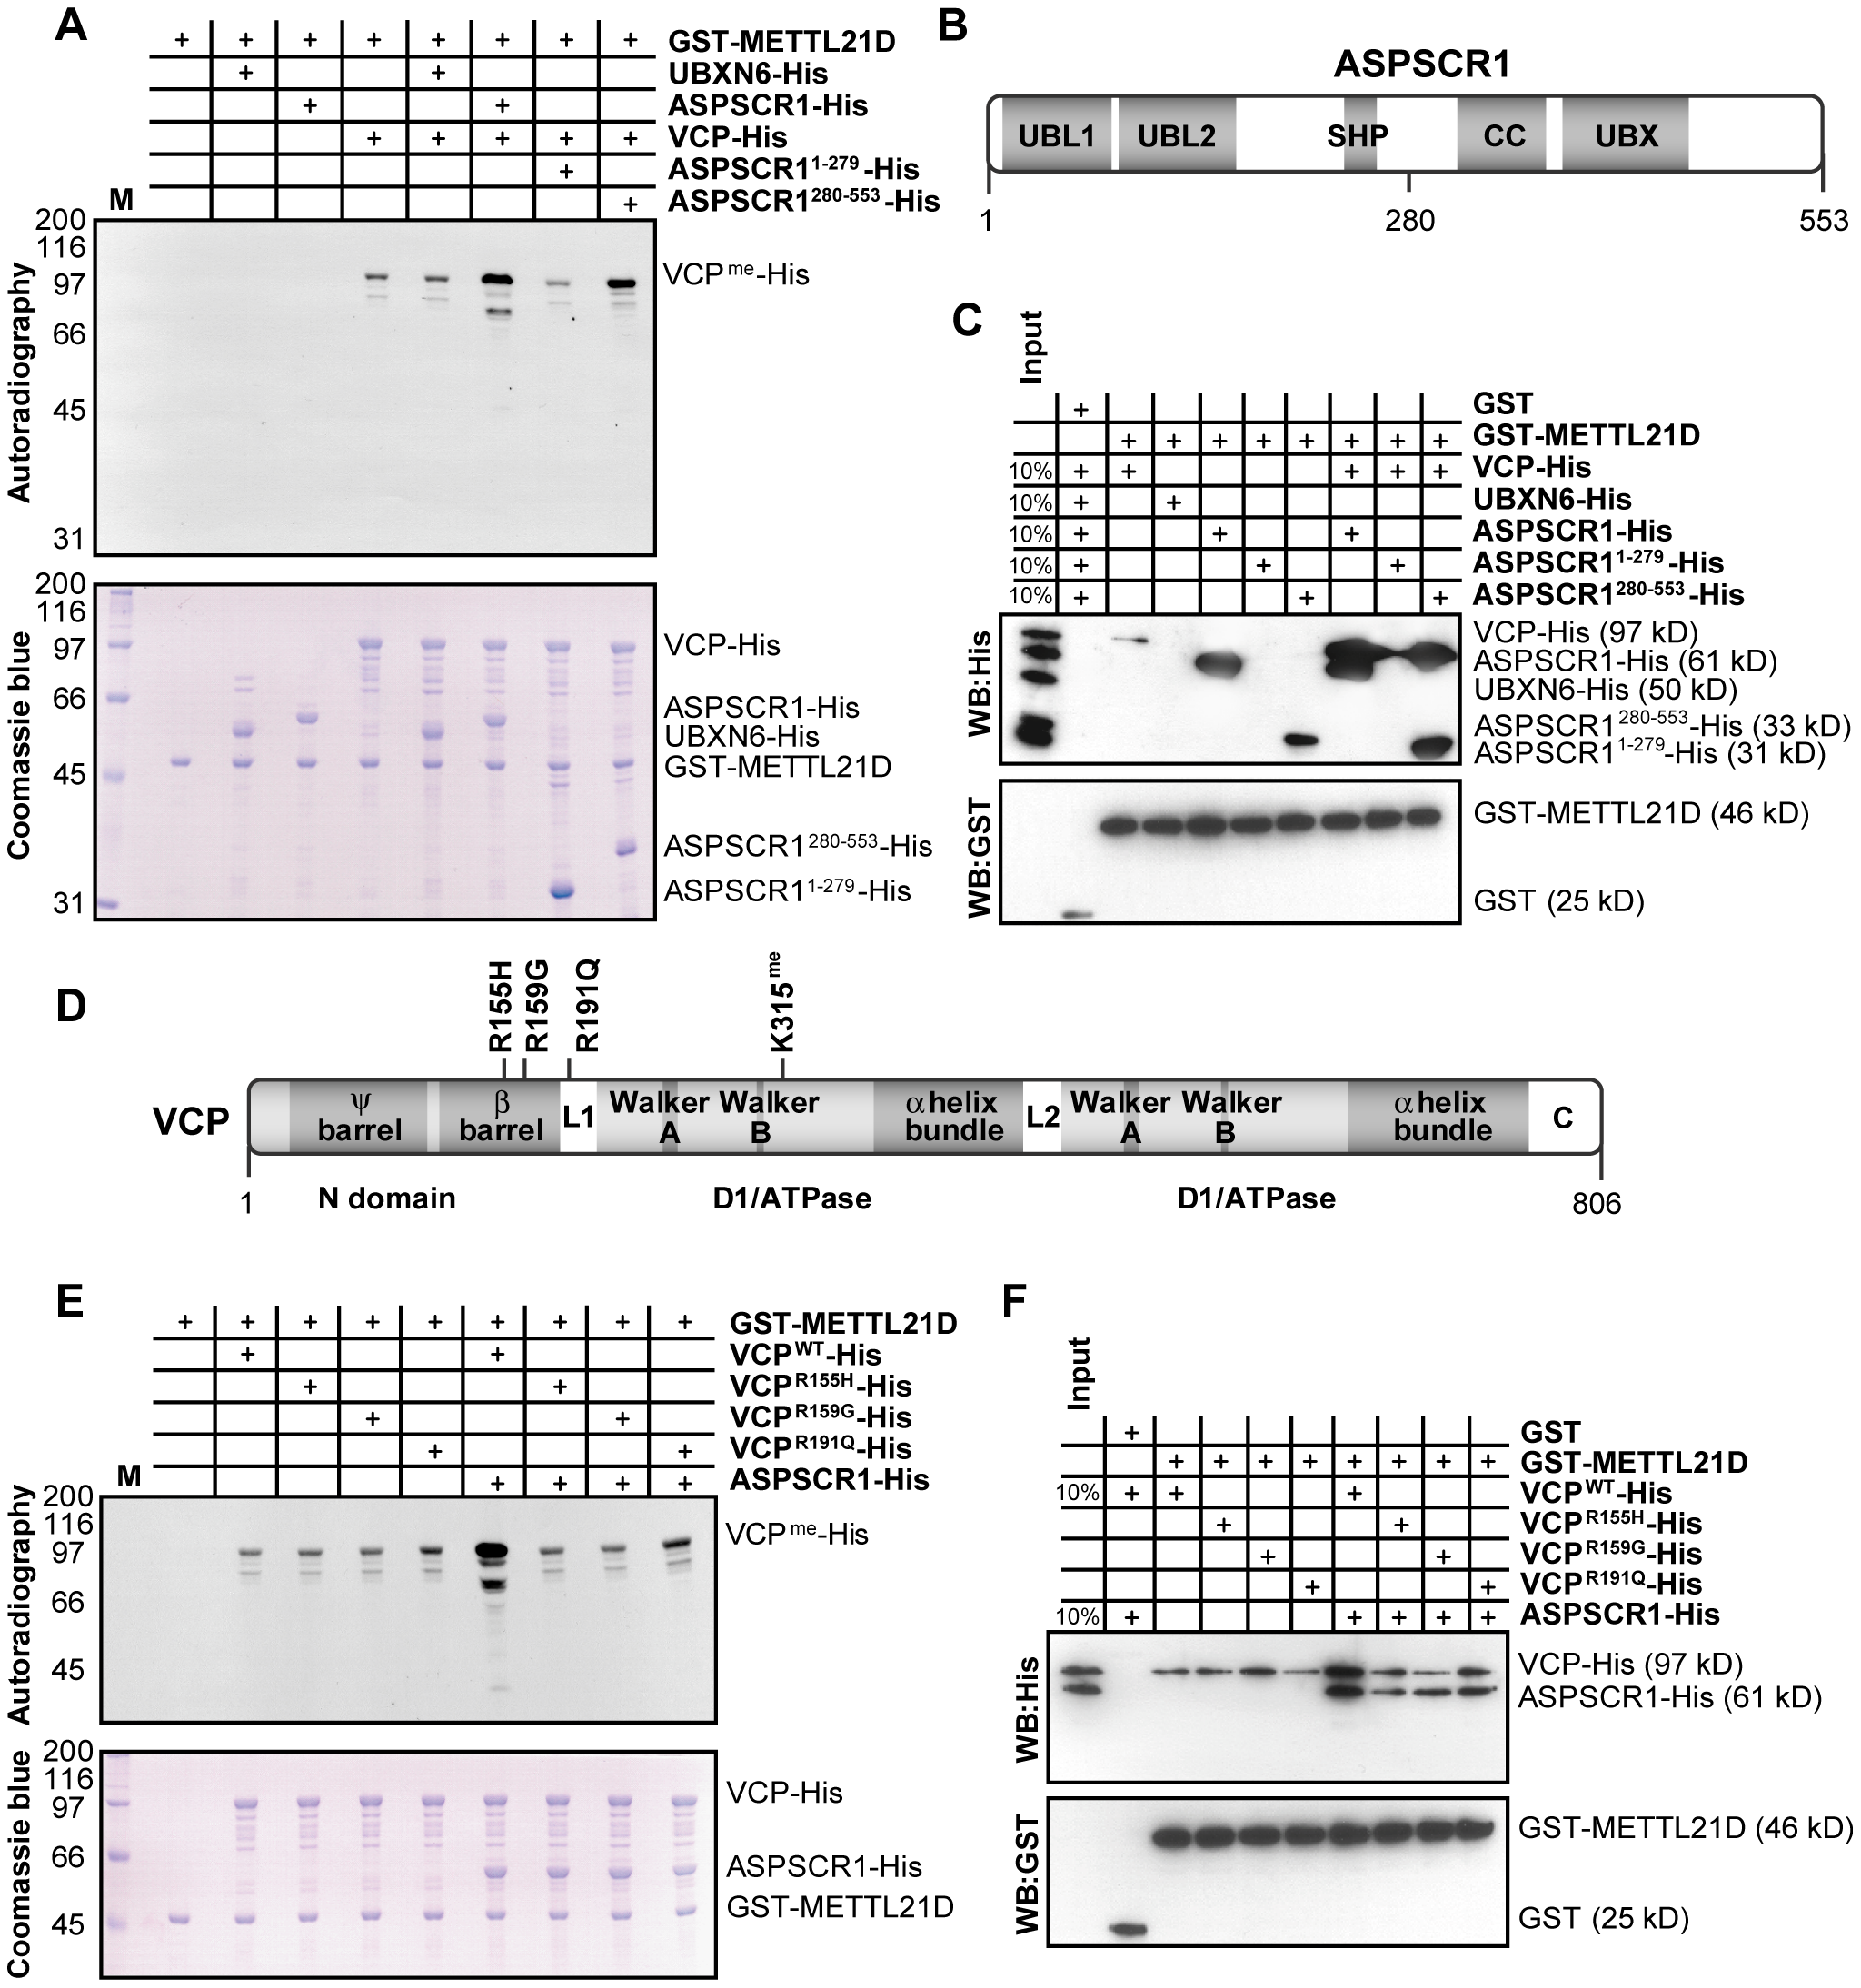 ASPSCR1 promotes methylation of VCP by METTL21D.